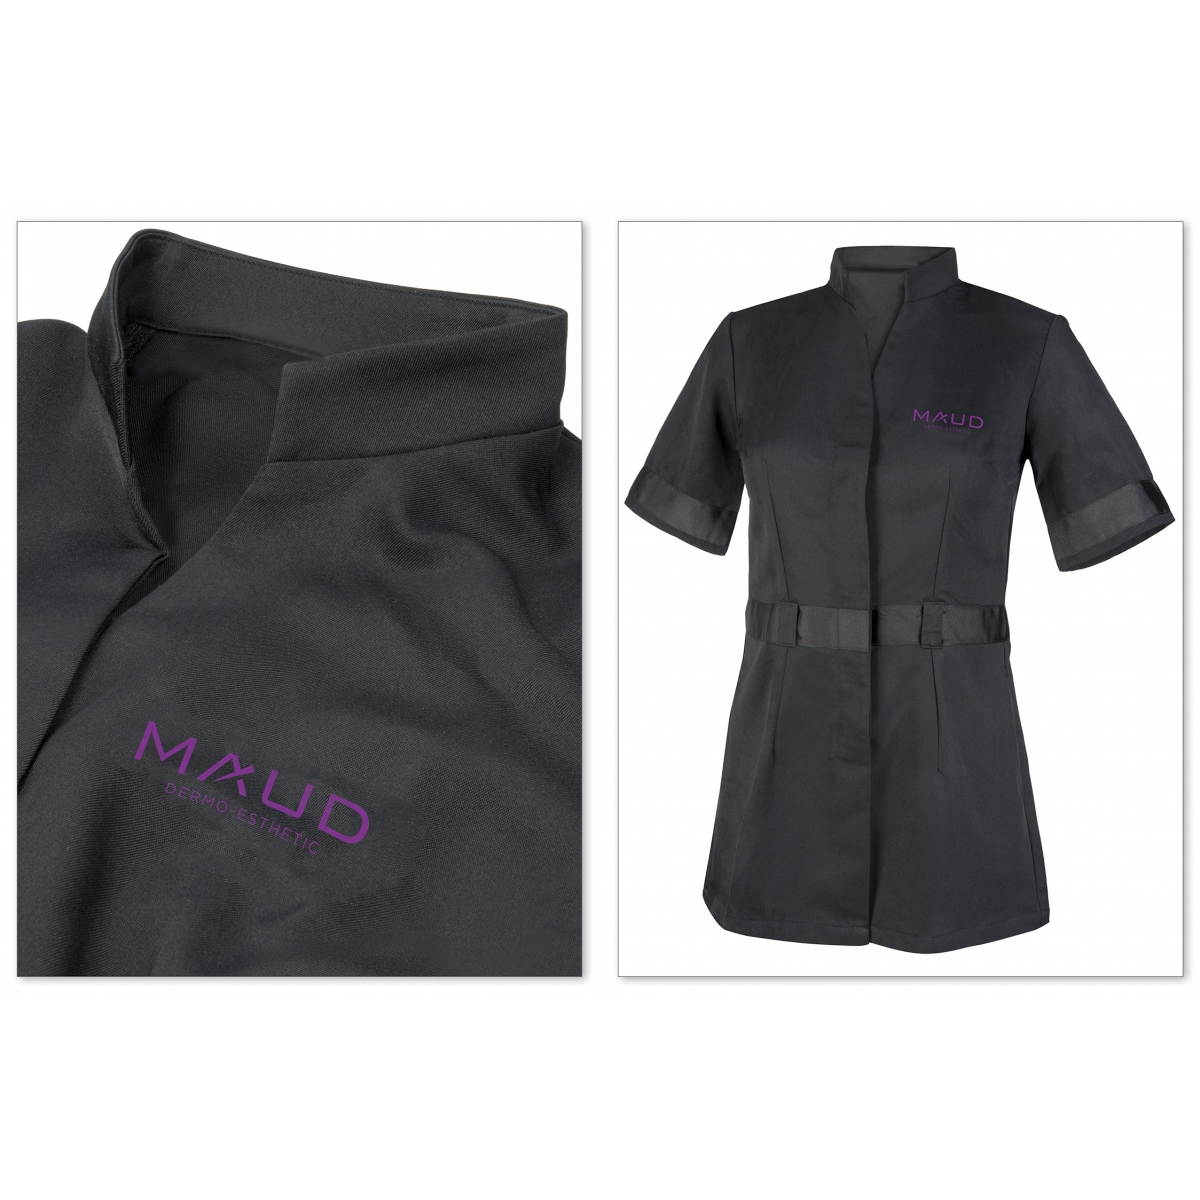 GOODIES - MAUD PROFESSIONAL SHOP - BLOUSE MAUD PROFESSIONAL FEMME NOIR